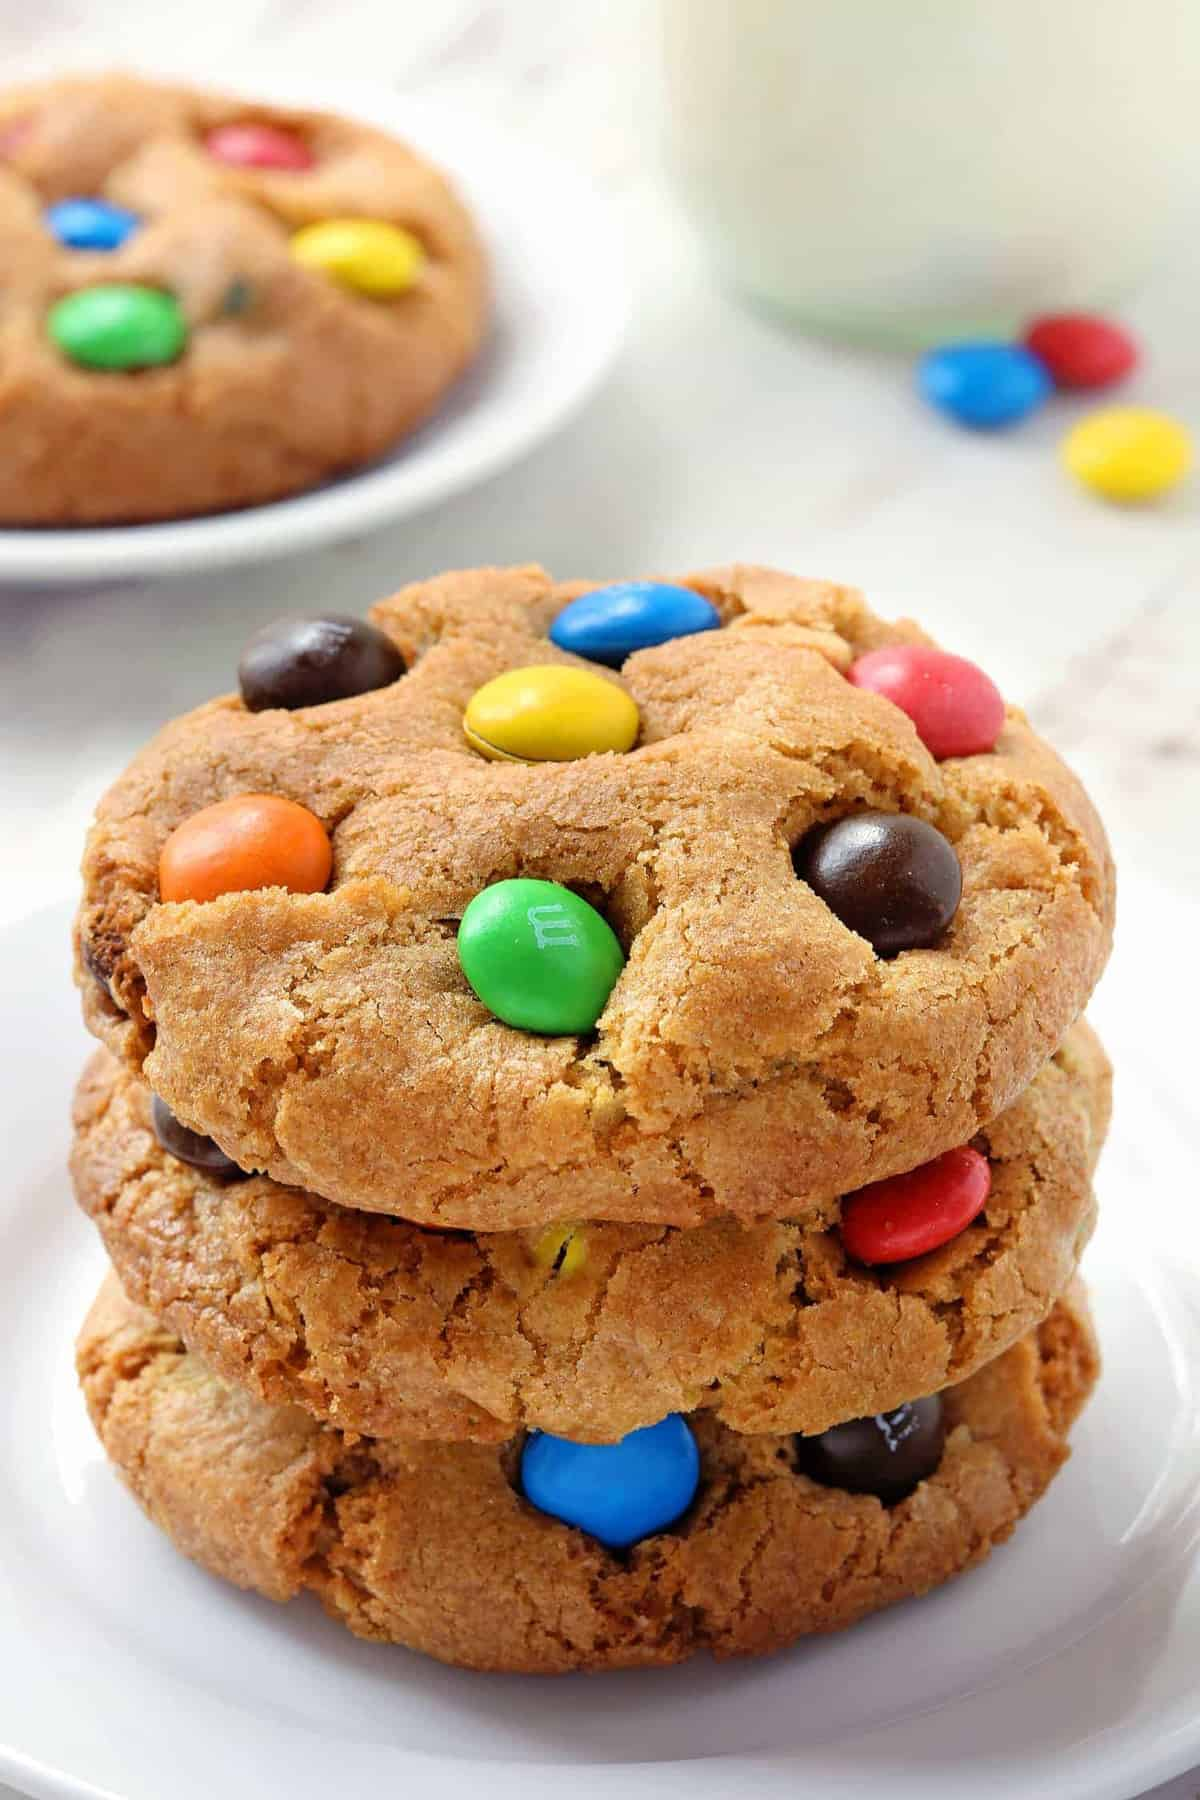 I M A Girl 5 Most Famous Teen Celebrities: M&M Cookies